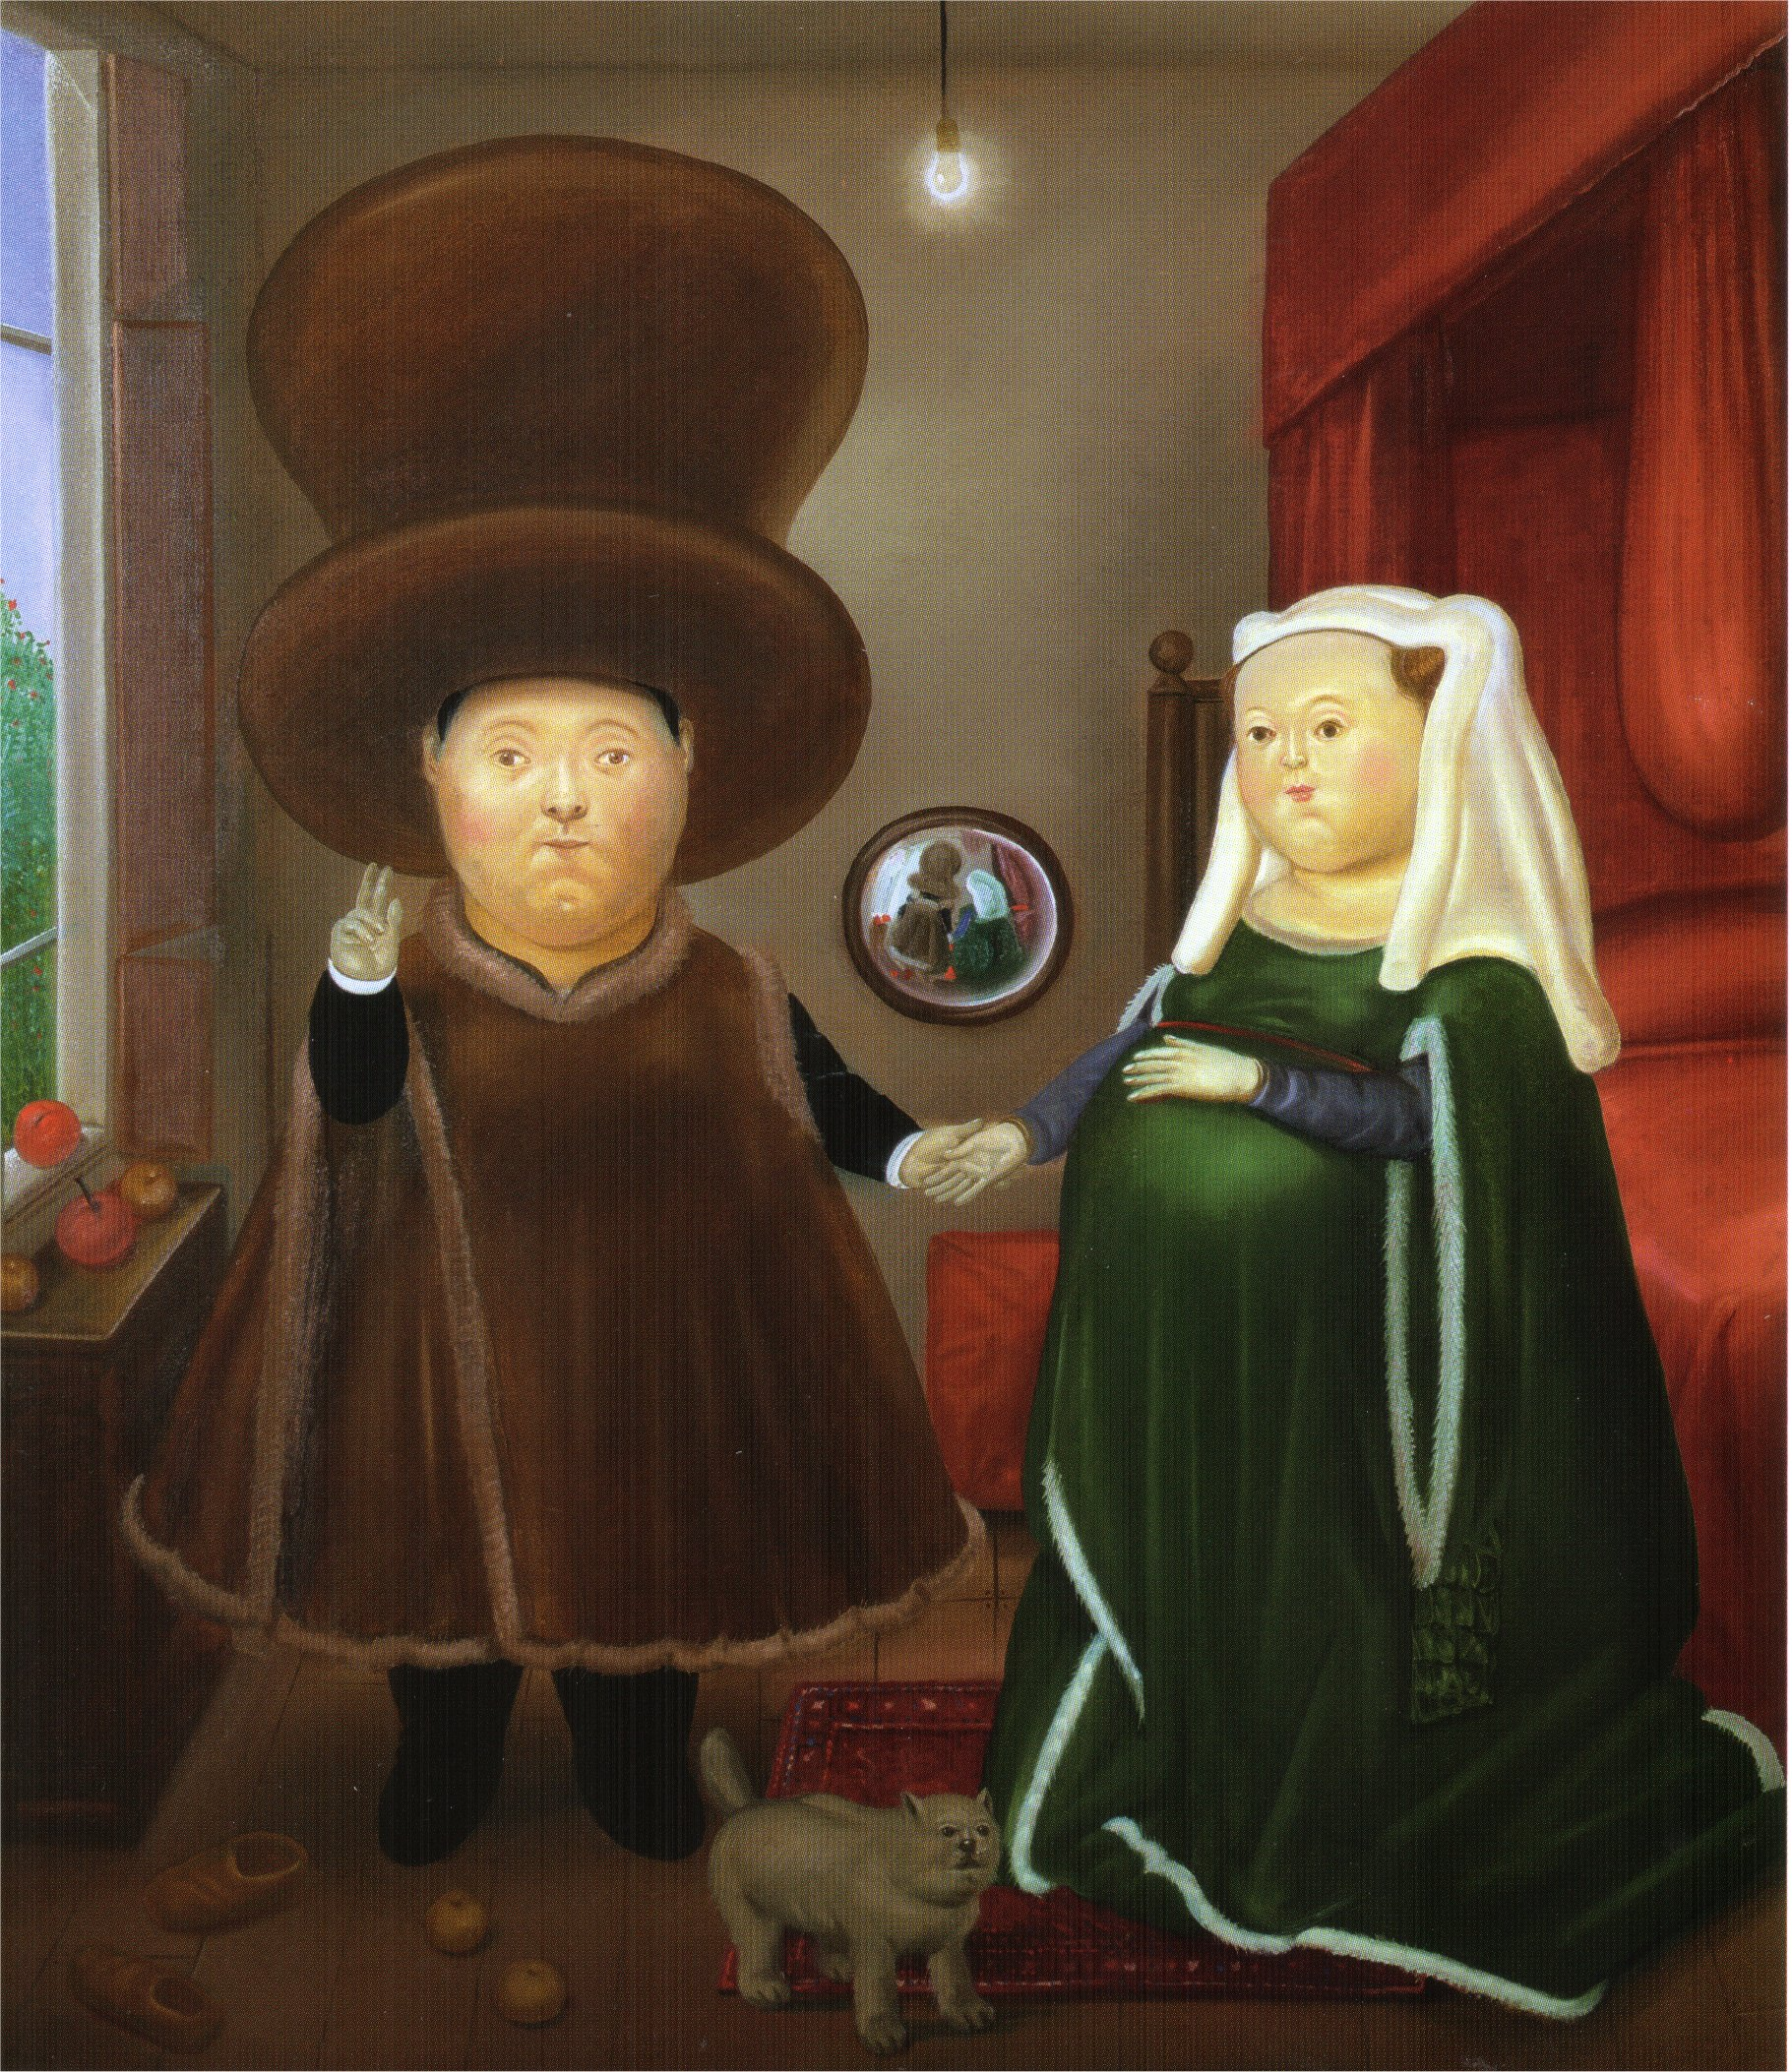 The Arnolfini portrait by Jan van Eyck: The mystery behind a National Gallery masterpiece